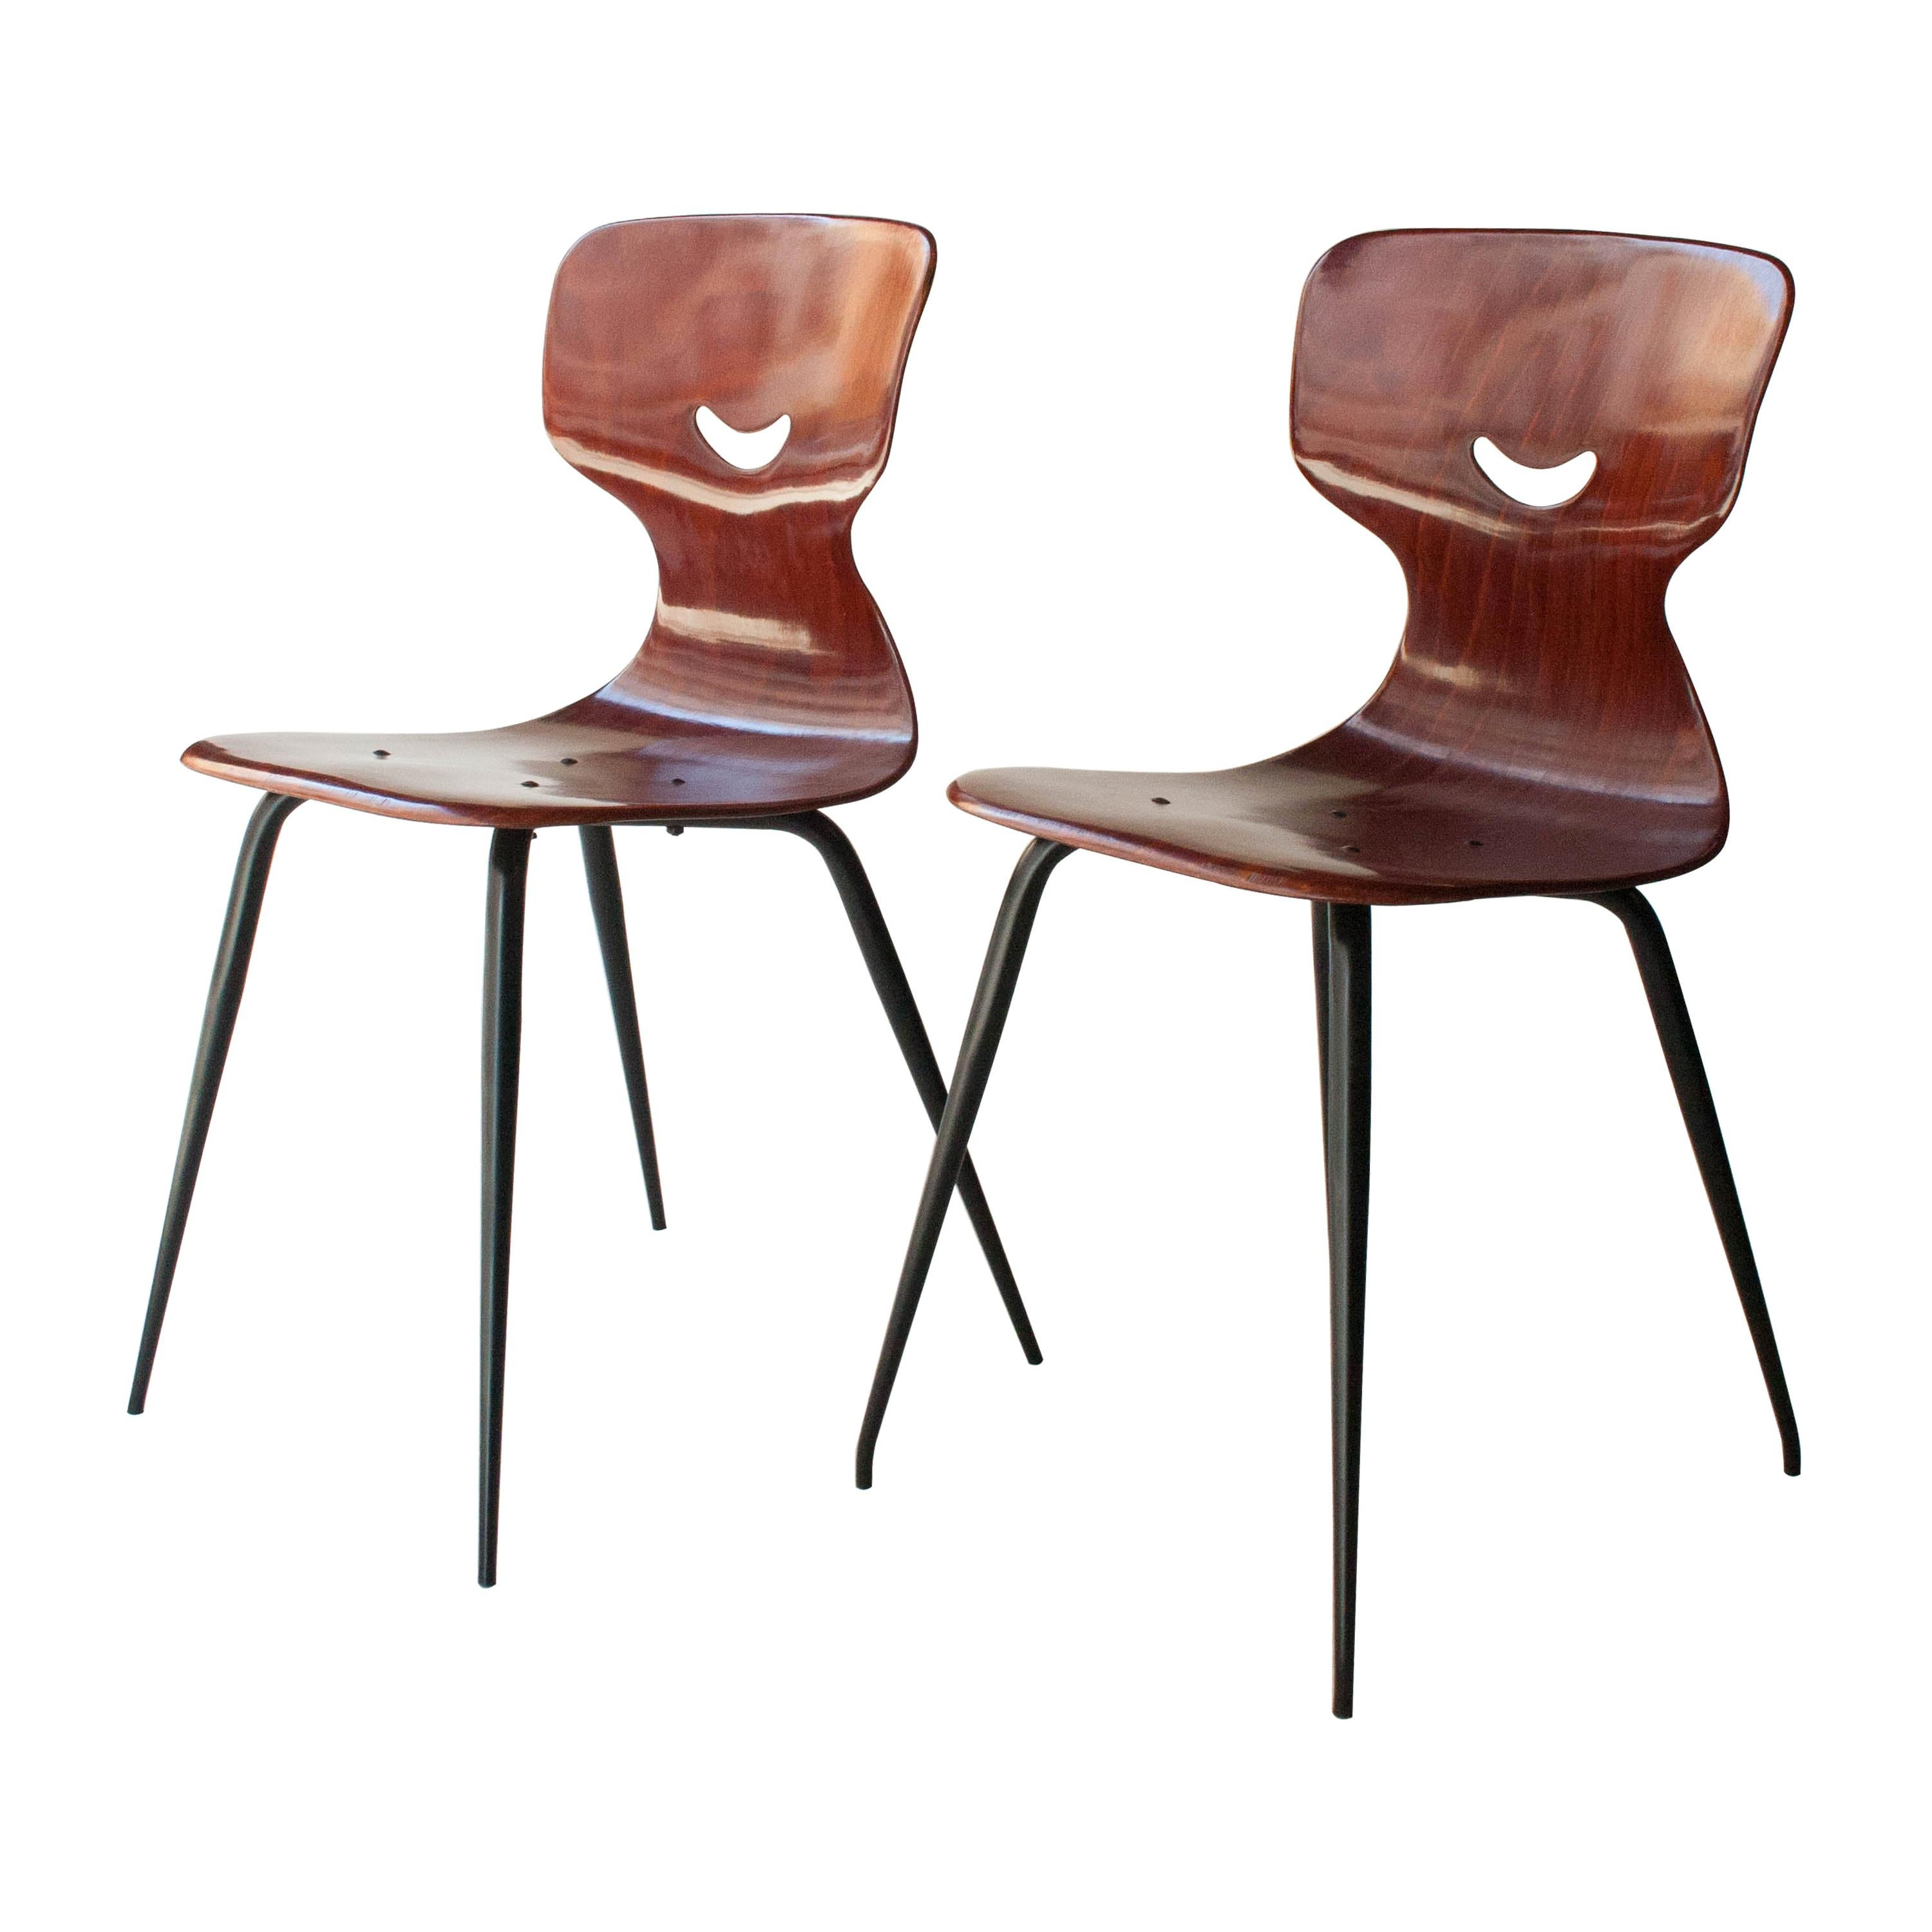 Adam Stegner for Pagholz Flötotto Chairs Wood Iron, Germany, 1960